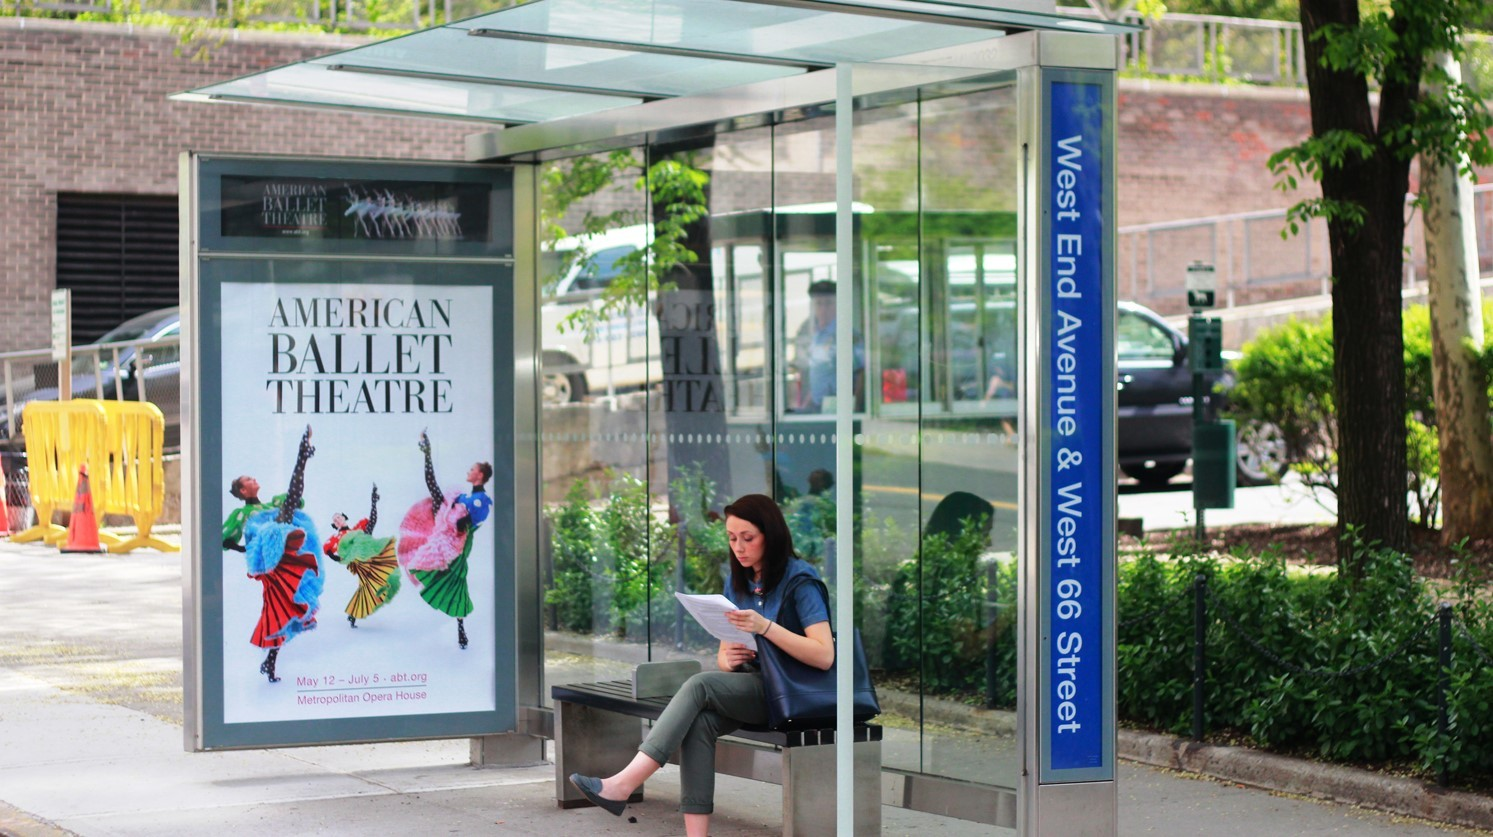 American Ballet Theatre Bus Shelter Advertising